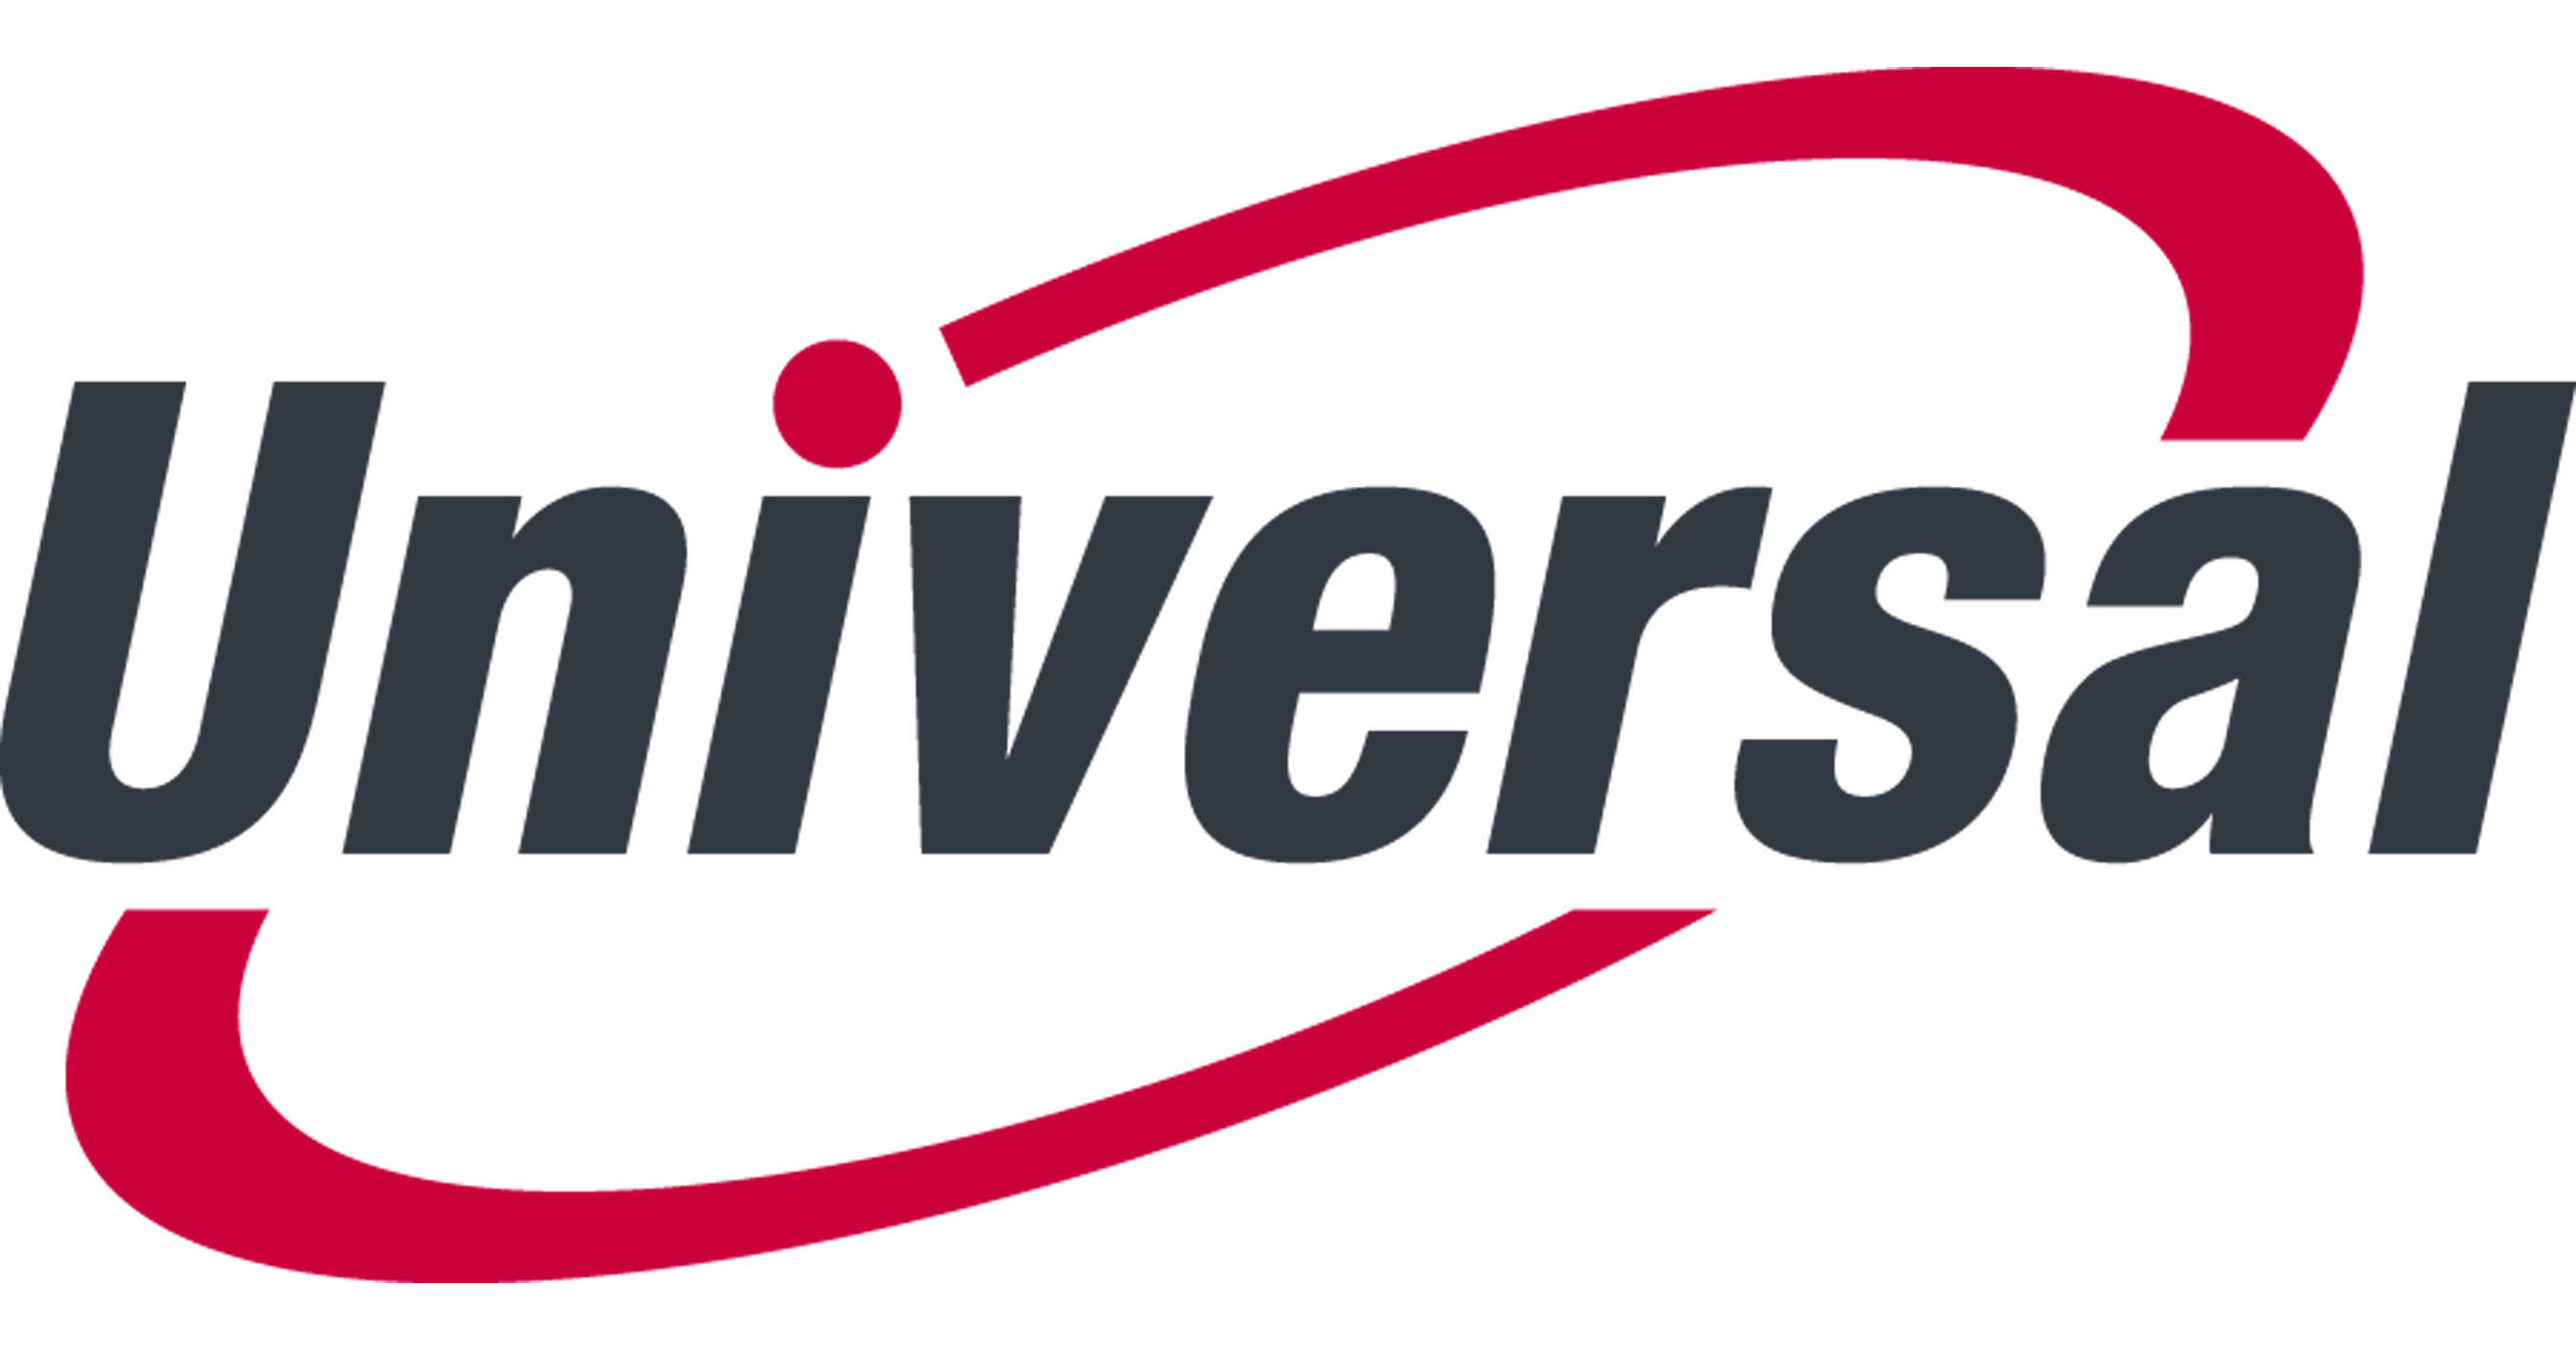 Universal investments holdings inc guoyuan securities brokerage and investment